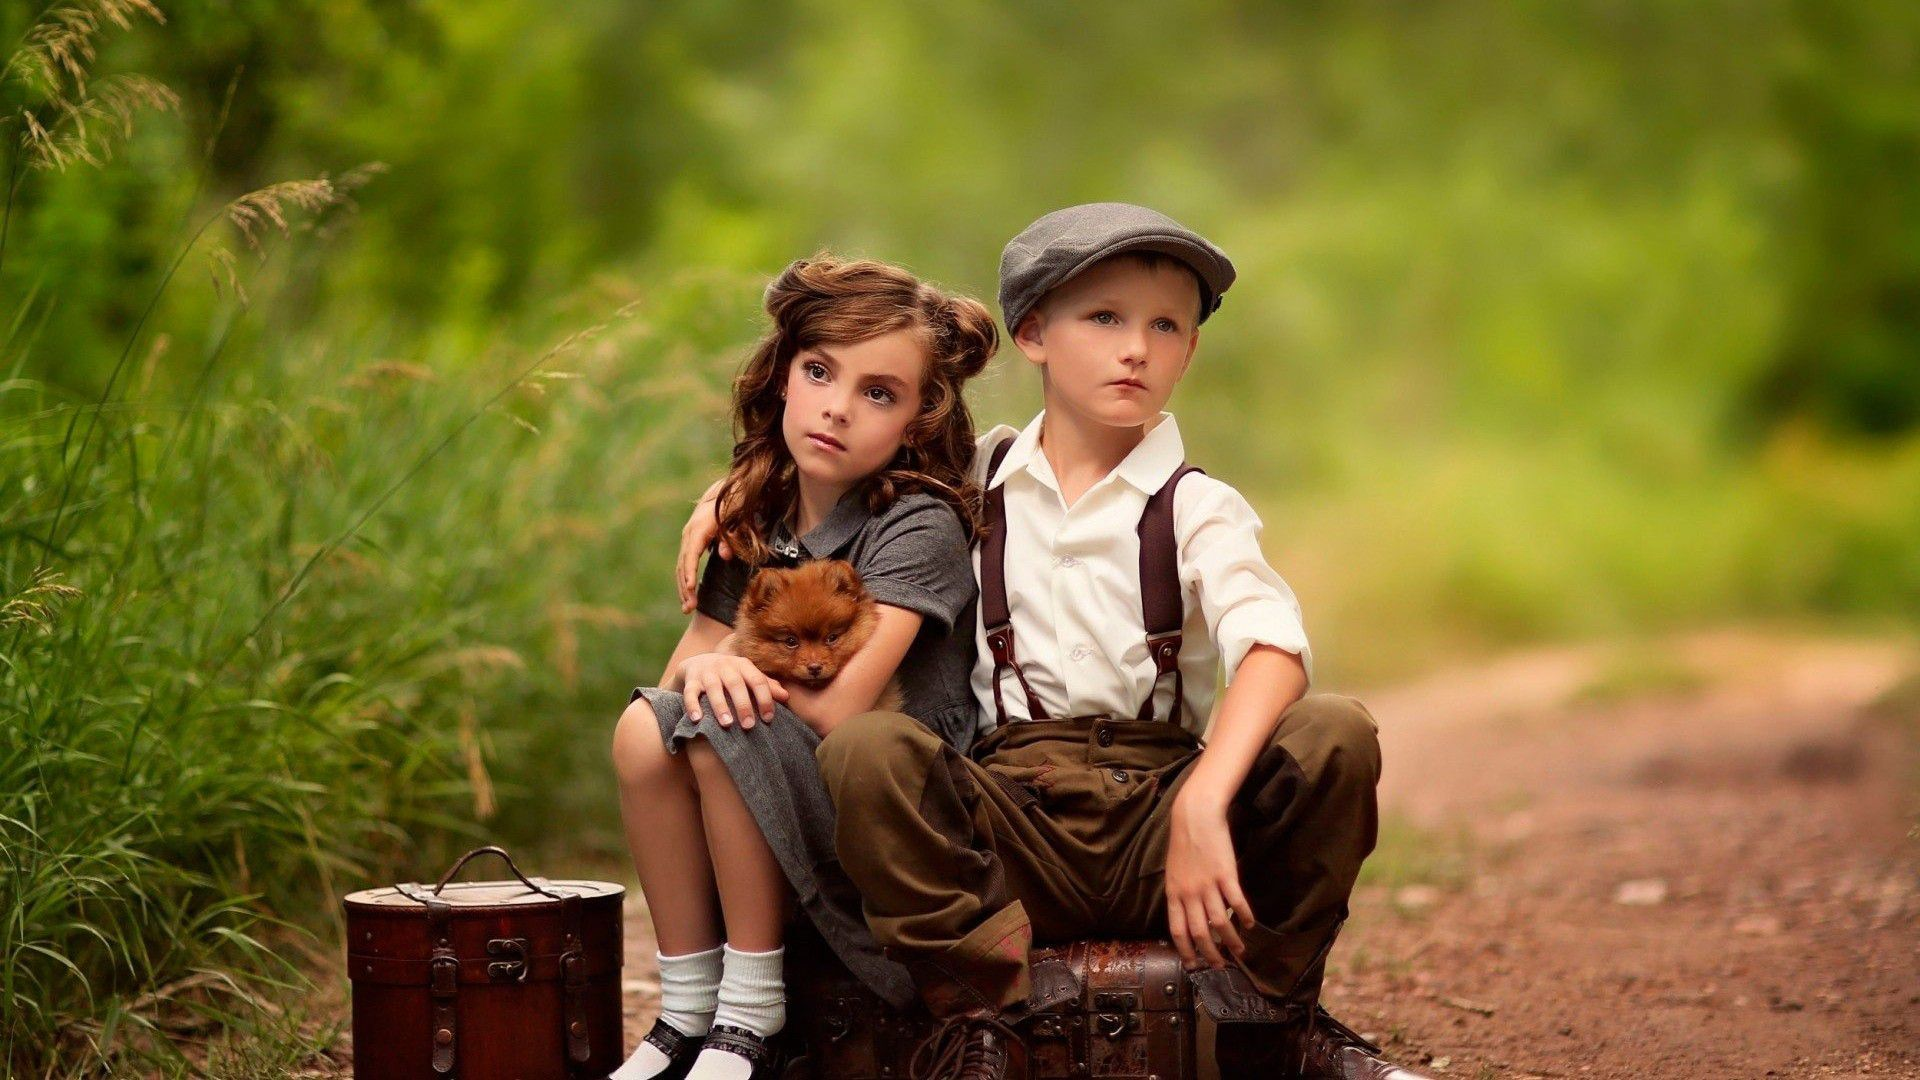 Boy And Girl High Definition Wallpapers